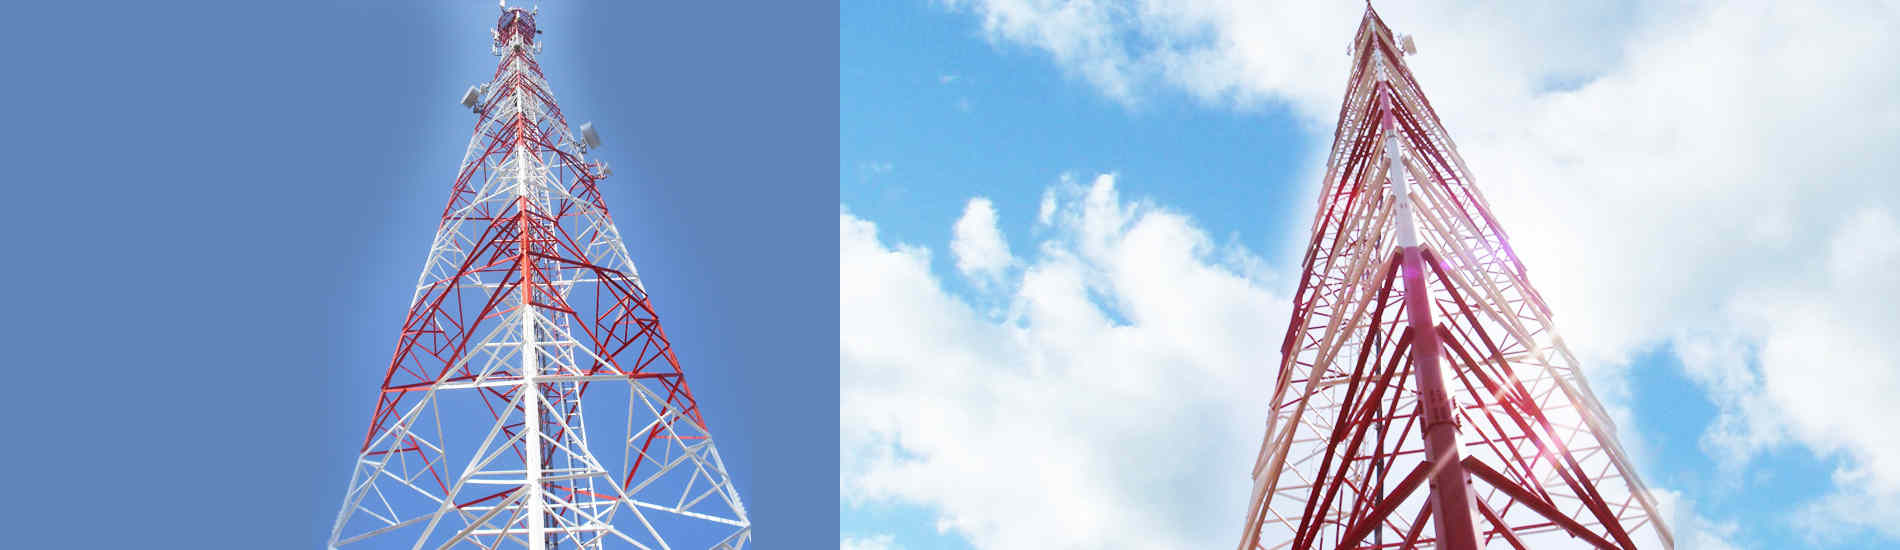 Manufacturer of Towers and Accessories